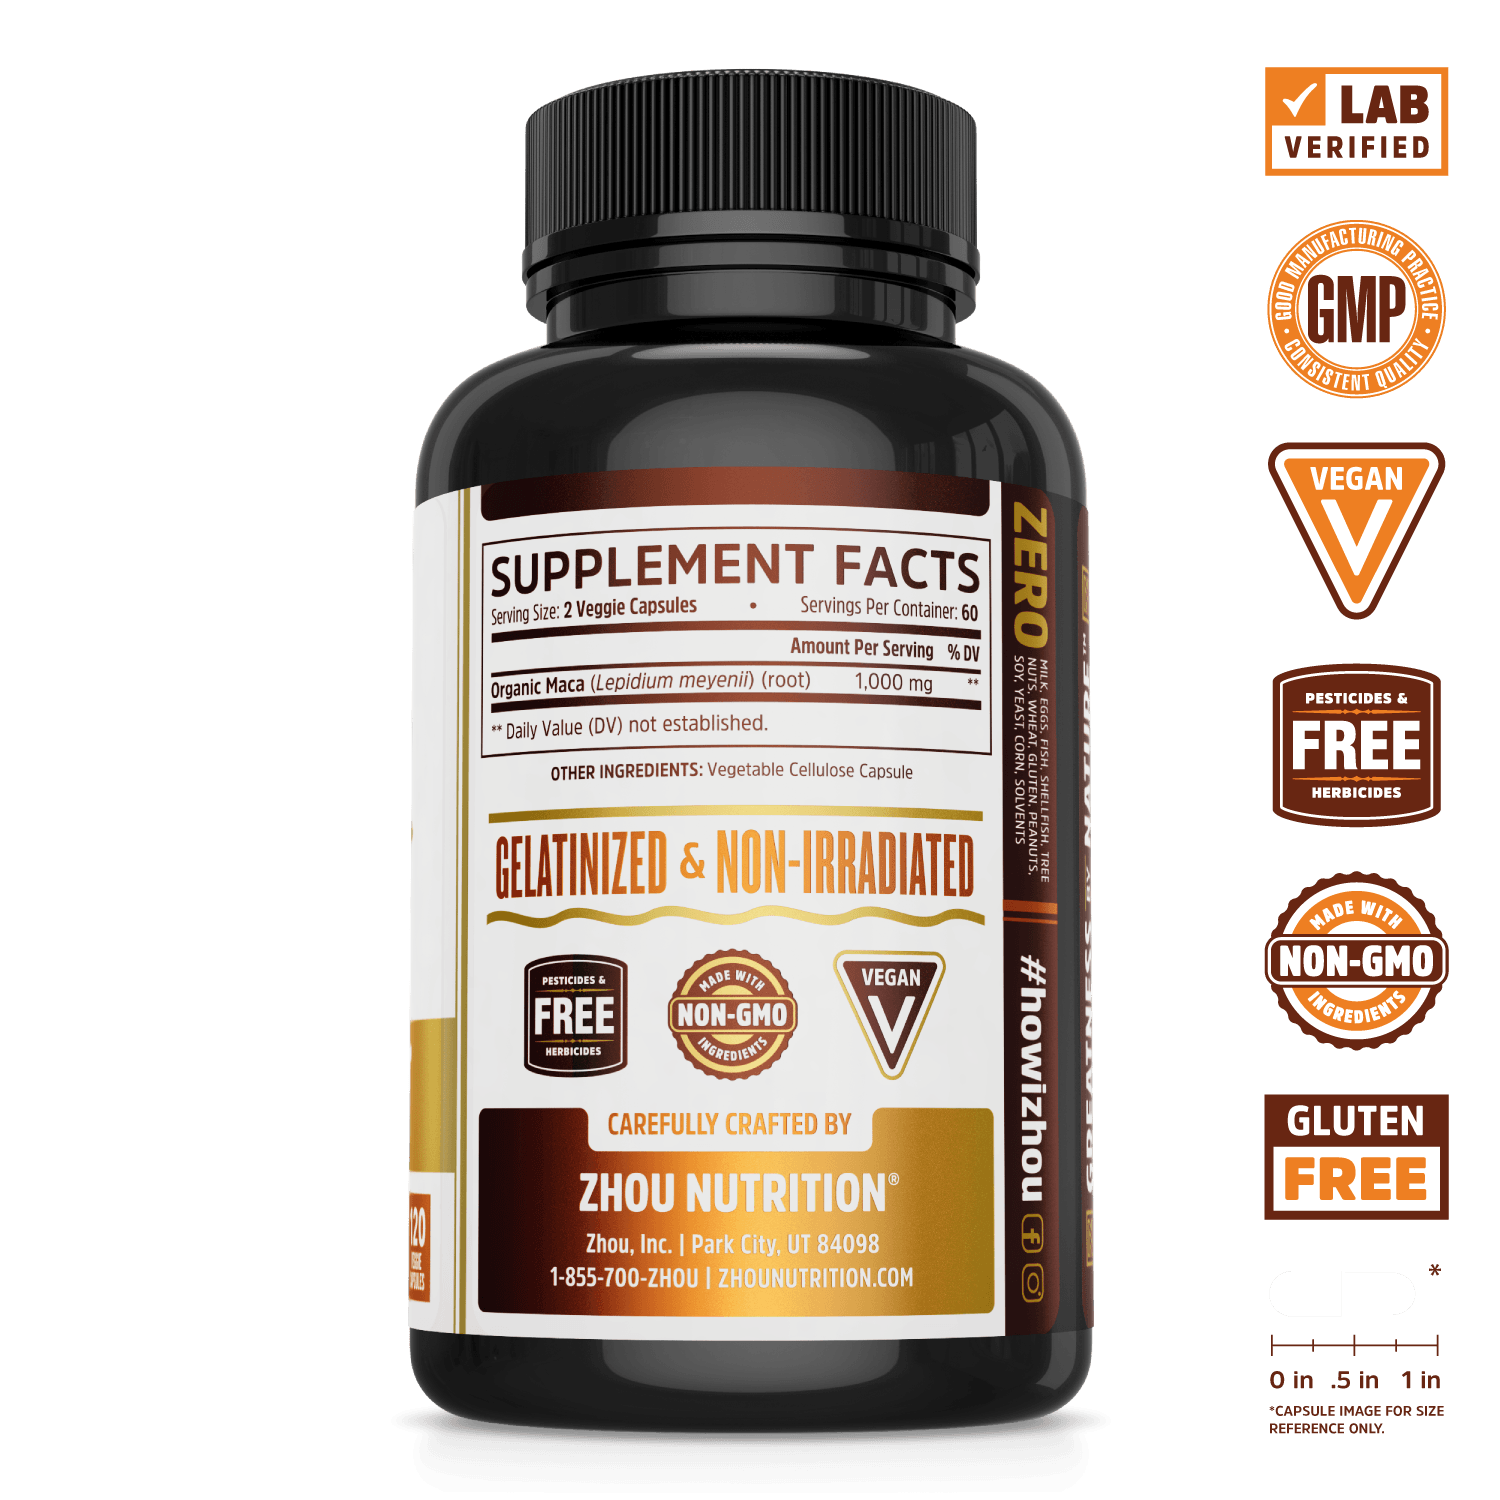 Zhou Nutrition gelatinized non-irradiated Maca Root supplement. Lab verified, good manufacturing practices, vegan, organic maca, made with non-GMO ingredients, gluten free